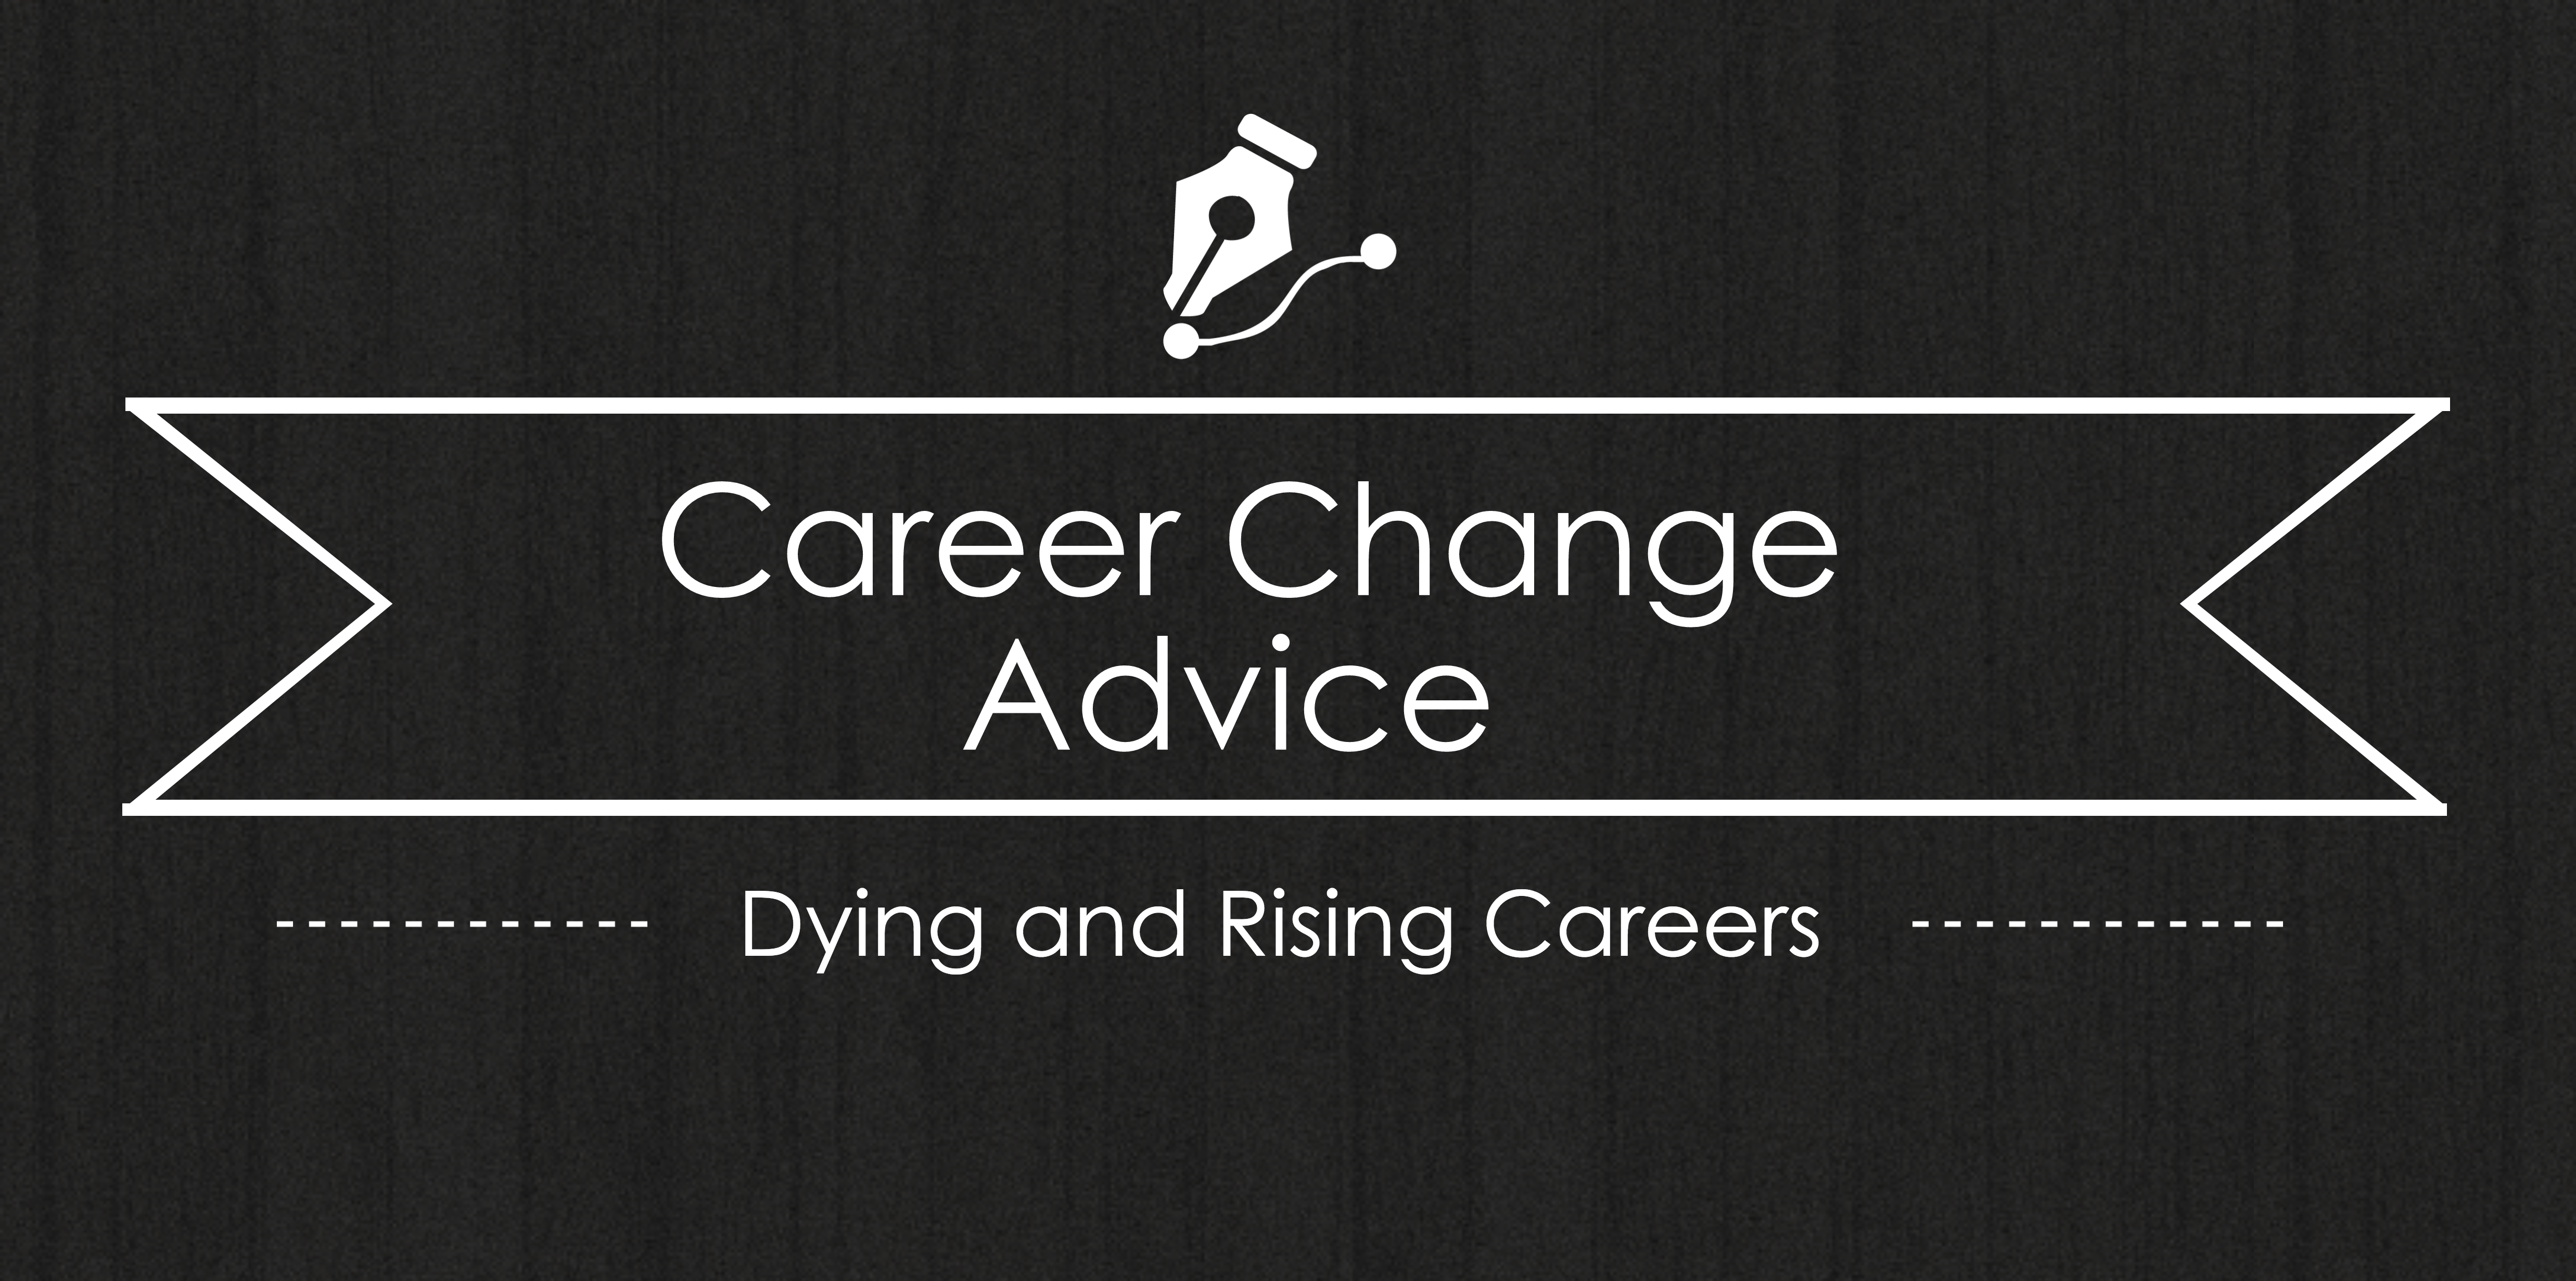 Career Glider - Dying and Rising Careers